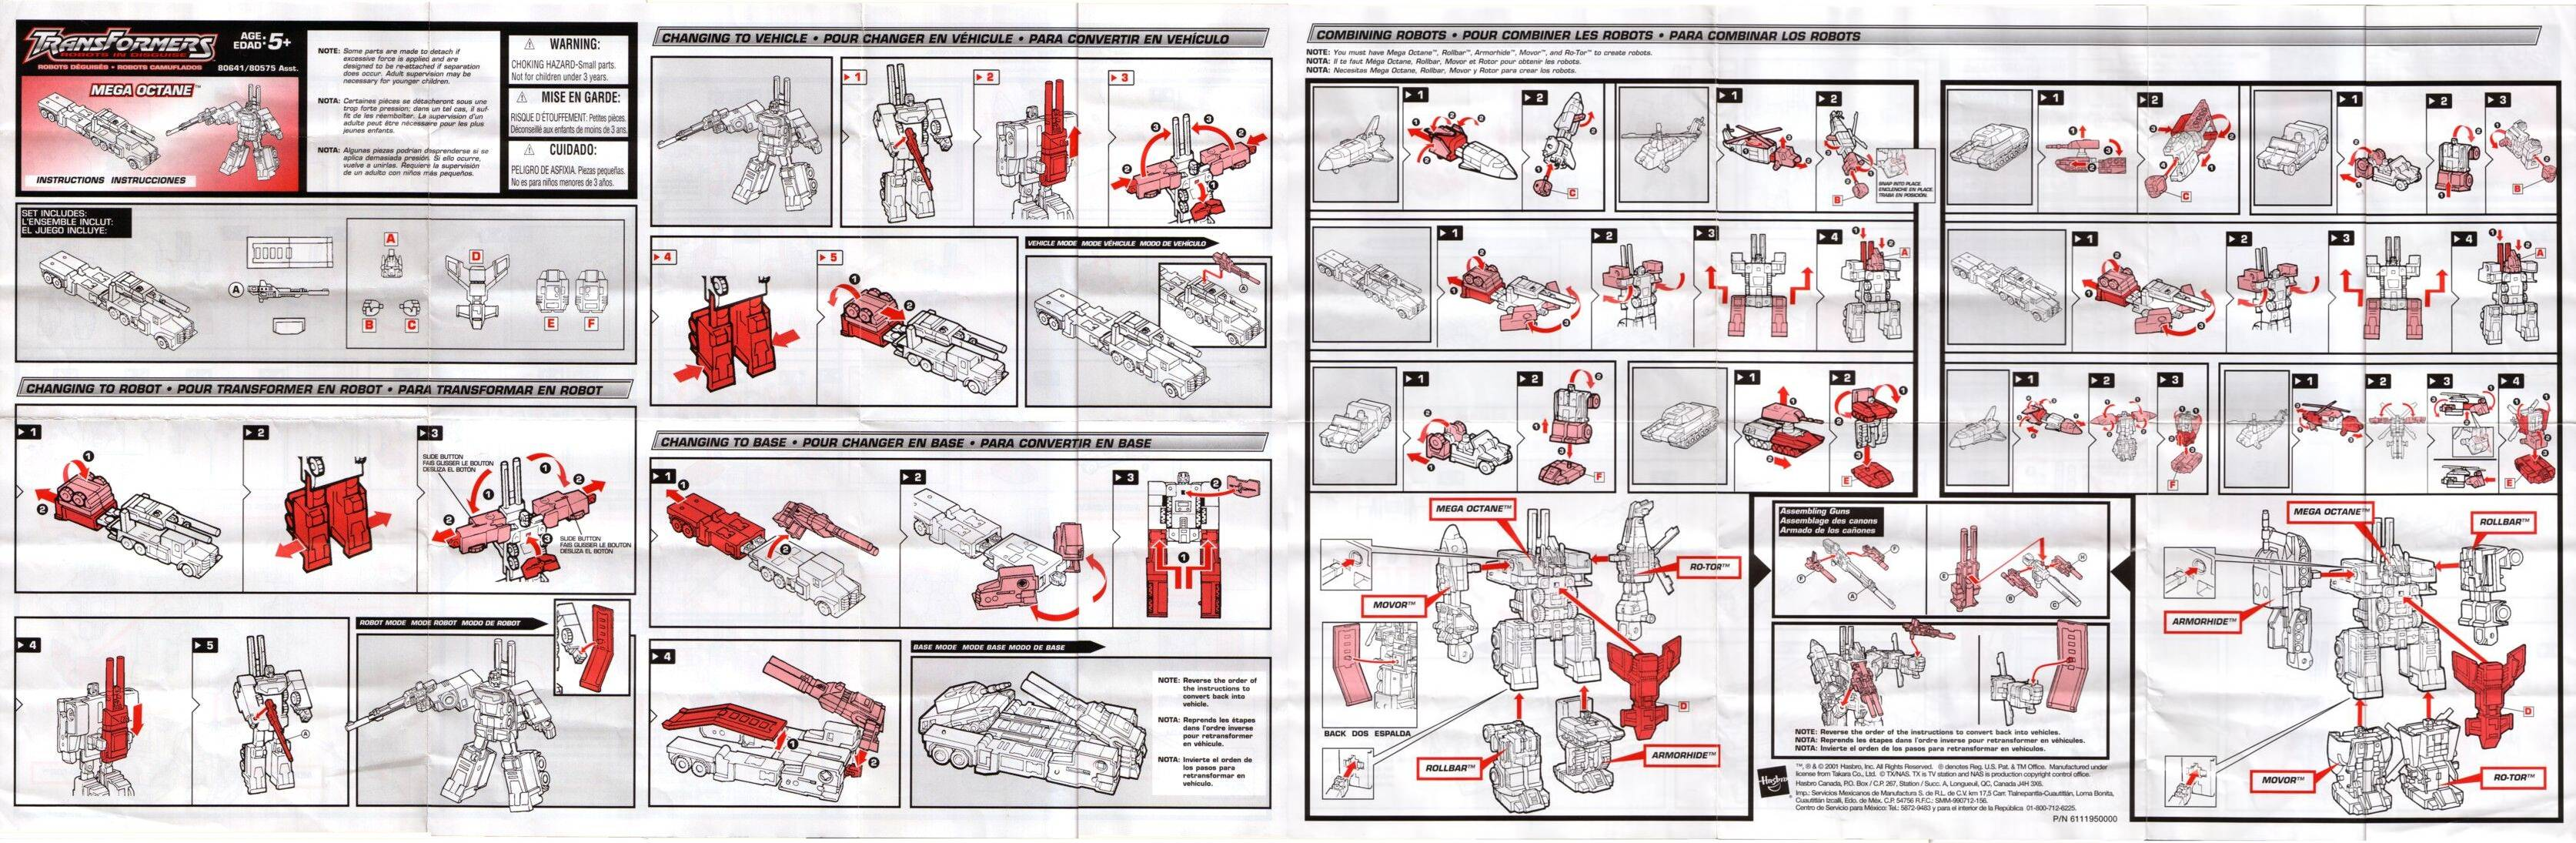 Robot In Disguise Instructions